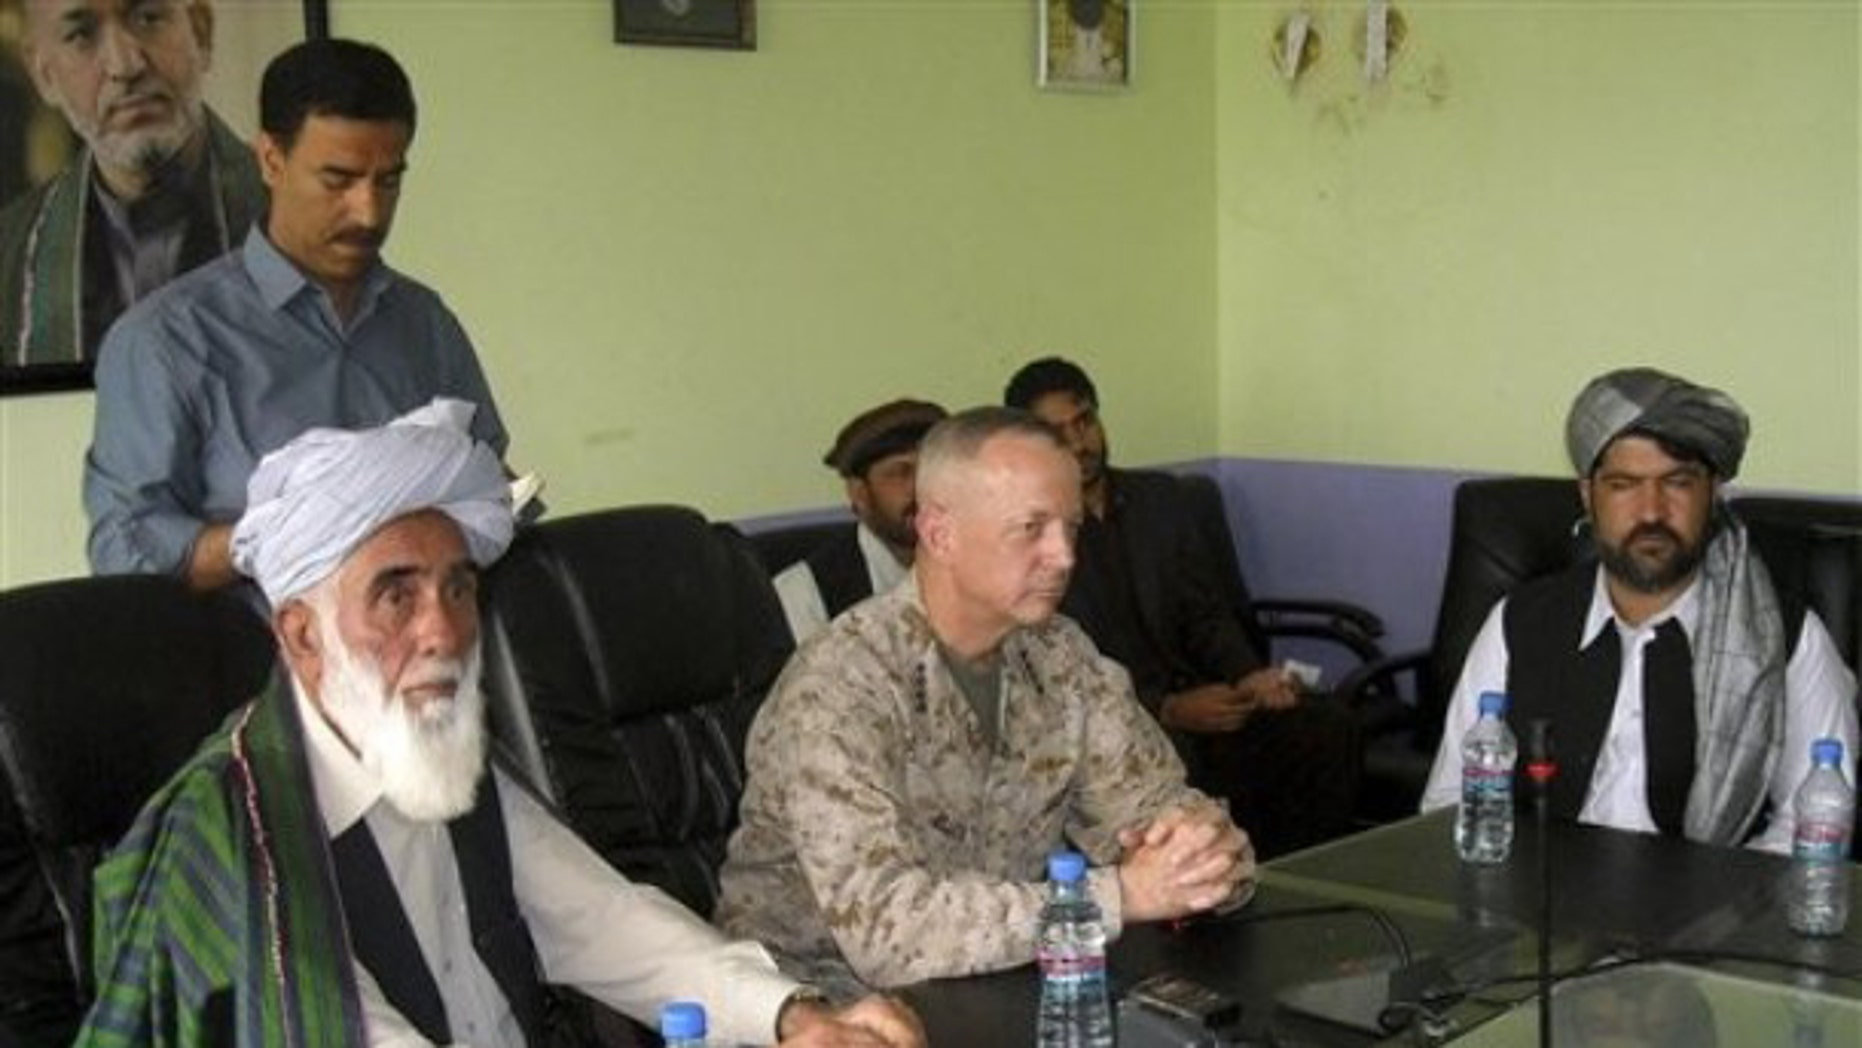 June, 8, 2012: The commander of US and NATO troops in Afghanistan, US Marine Lt. General John Allen, center, meets with the Governor of Logar Province, Allhaj Mohammad Tahir Sabari, left, south of Kabul, Afghanistan.